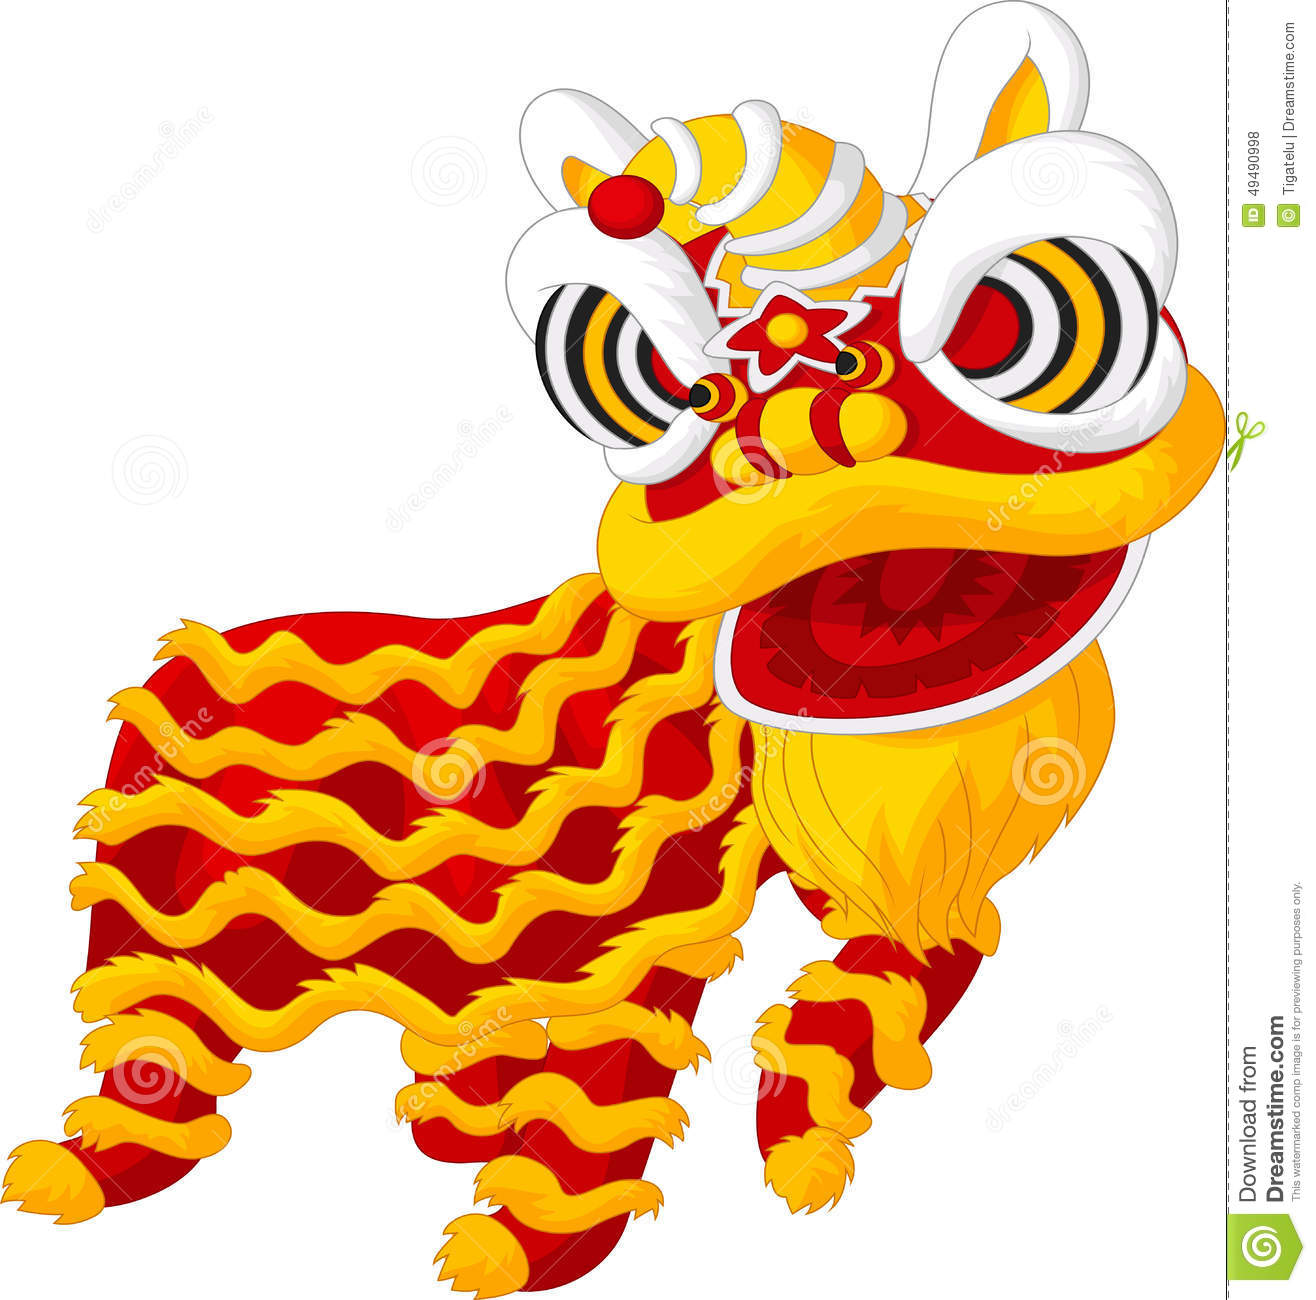 Chinese lion dance stock vector. Illustration of people 27127444.